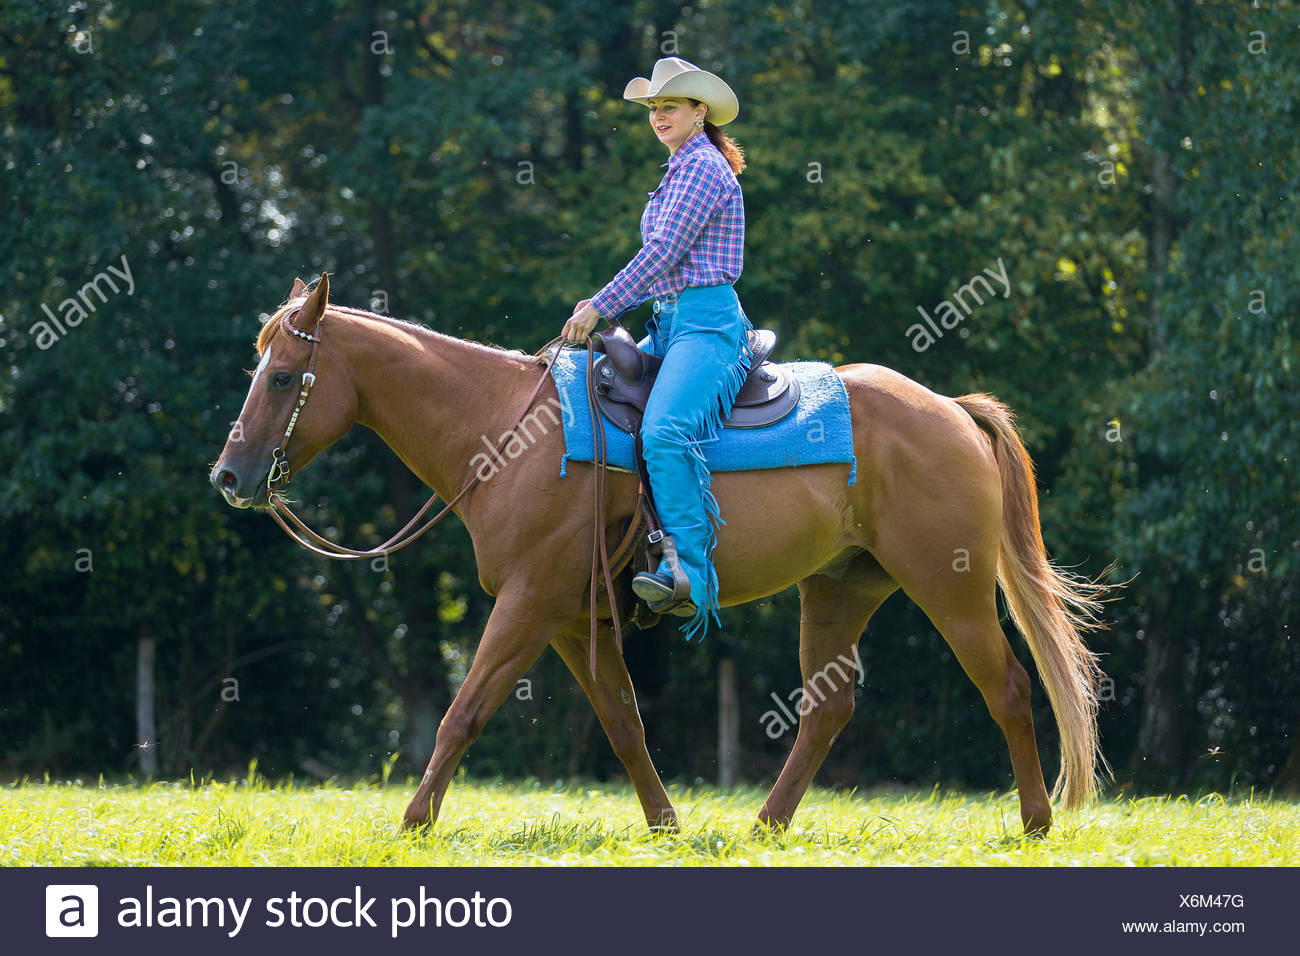 American Quarter Horse Western Rider With Chestnut Gelding Walking On A Pasture Germany Stock Photo Alamy